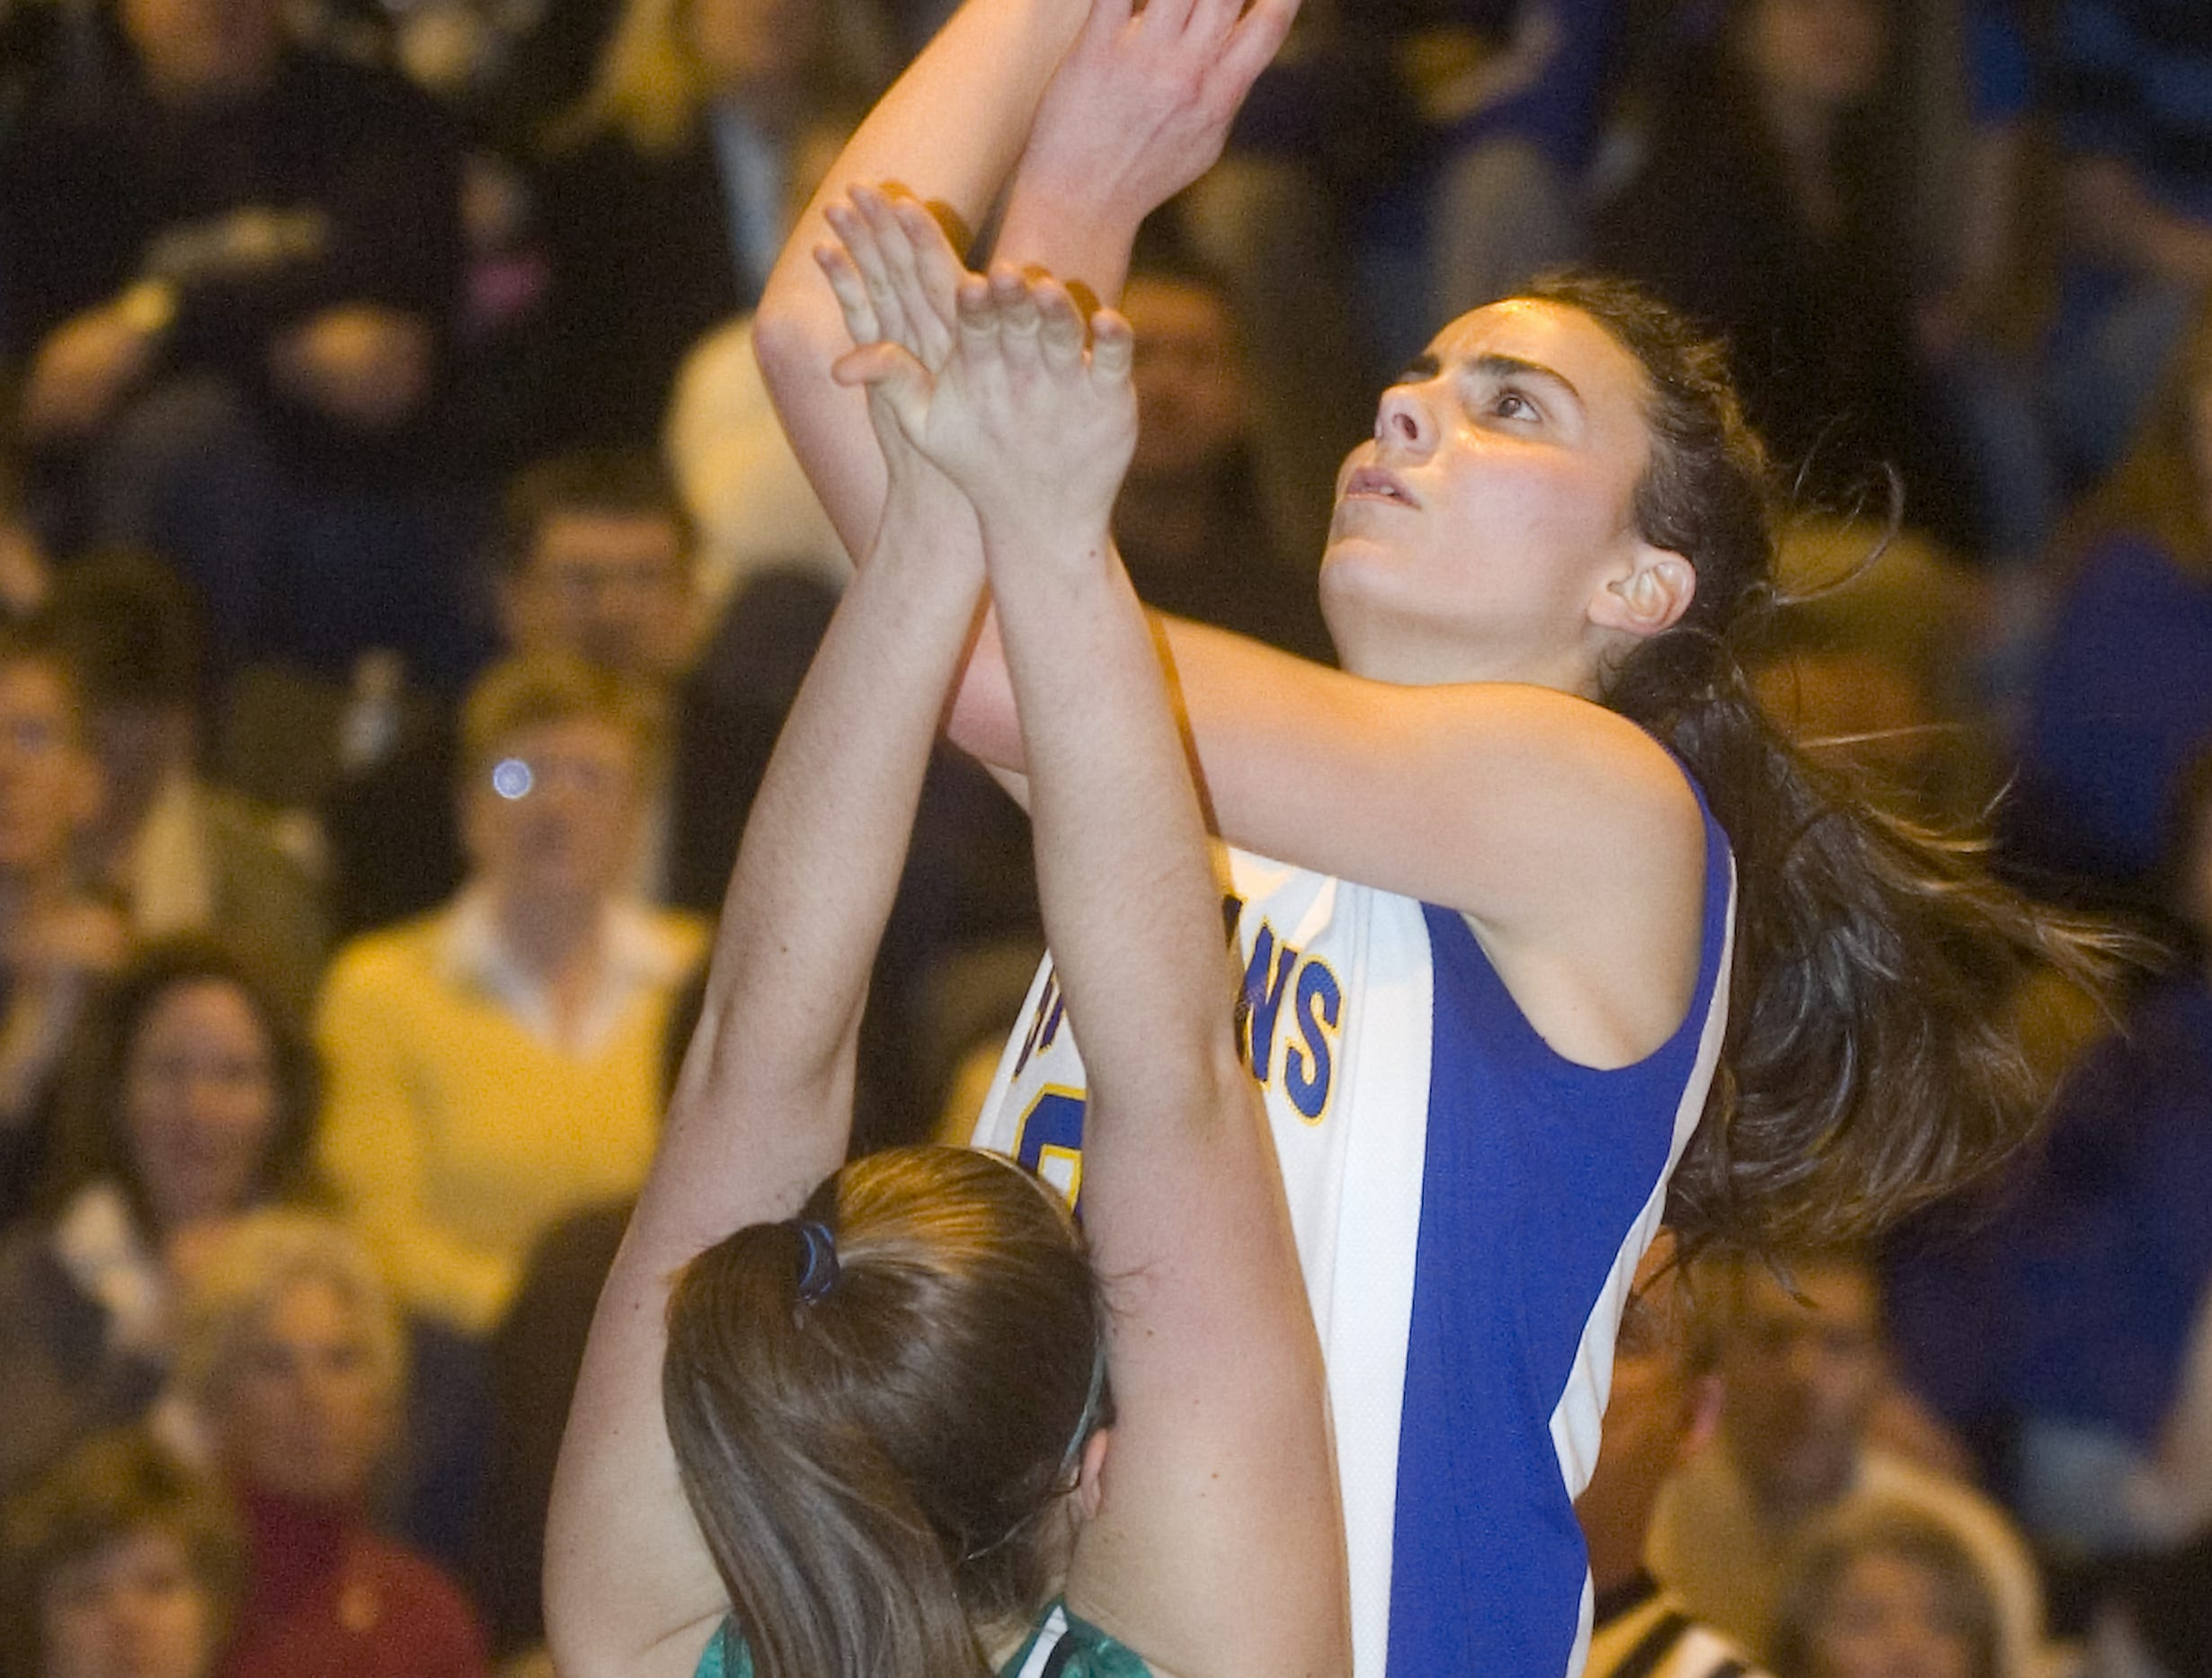 2009: Maine-Endwell's Megan Touhey, left, shoots over Seton Catholic Central's Miranda Desanctis in the second quarter of Friday's game at M-E.